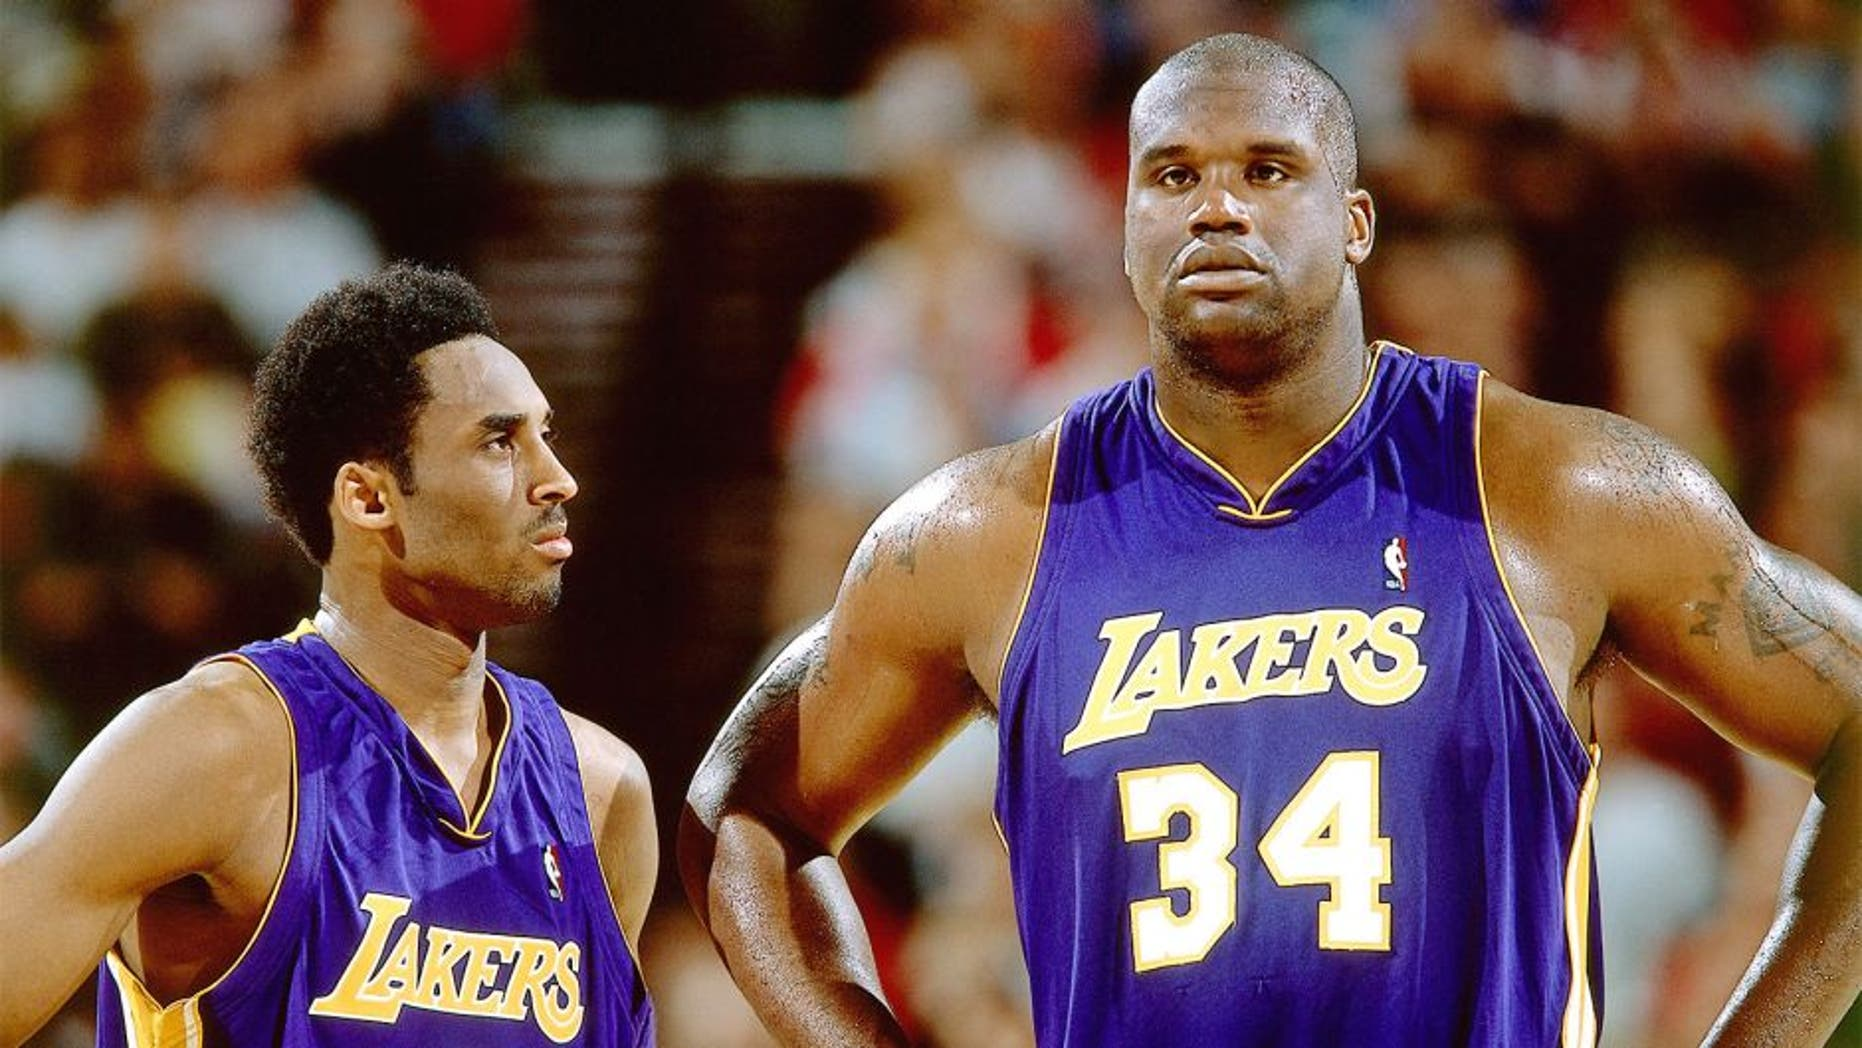 2001: Kobe Bryant #8 and Shaquille O'Neal #34 of the Los Angeles Lakers look on during an NBA game circa 2001. NOTE TO USER: User expressly acknowledges and agrees that, by downloading and/or using this Photograph, User is consenting to the terms and conditions of the Getty Images License Agreement. Mandatory Copyright Notice: Copyright 2001 NBAE (Photo by Sam Forencich/NBAE via Getty Images)